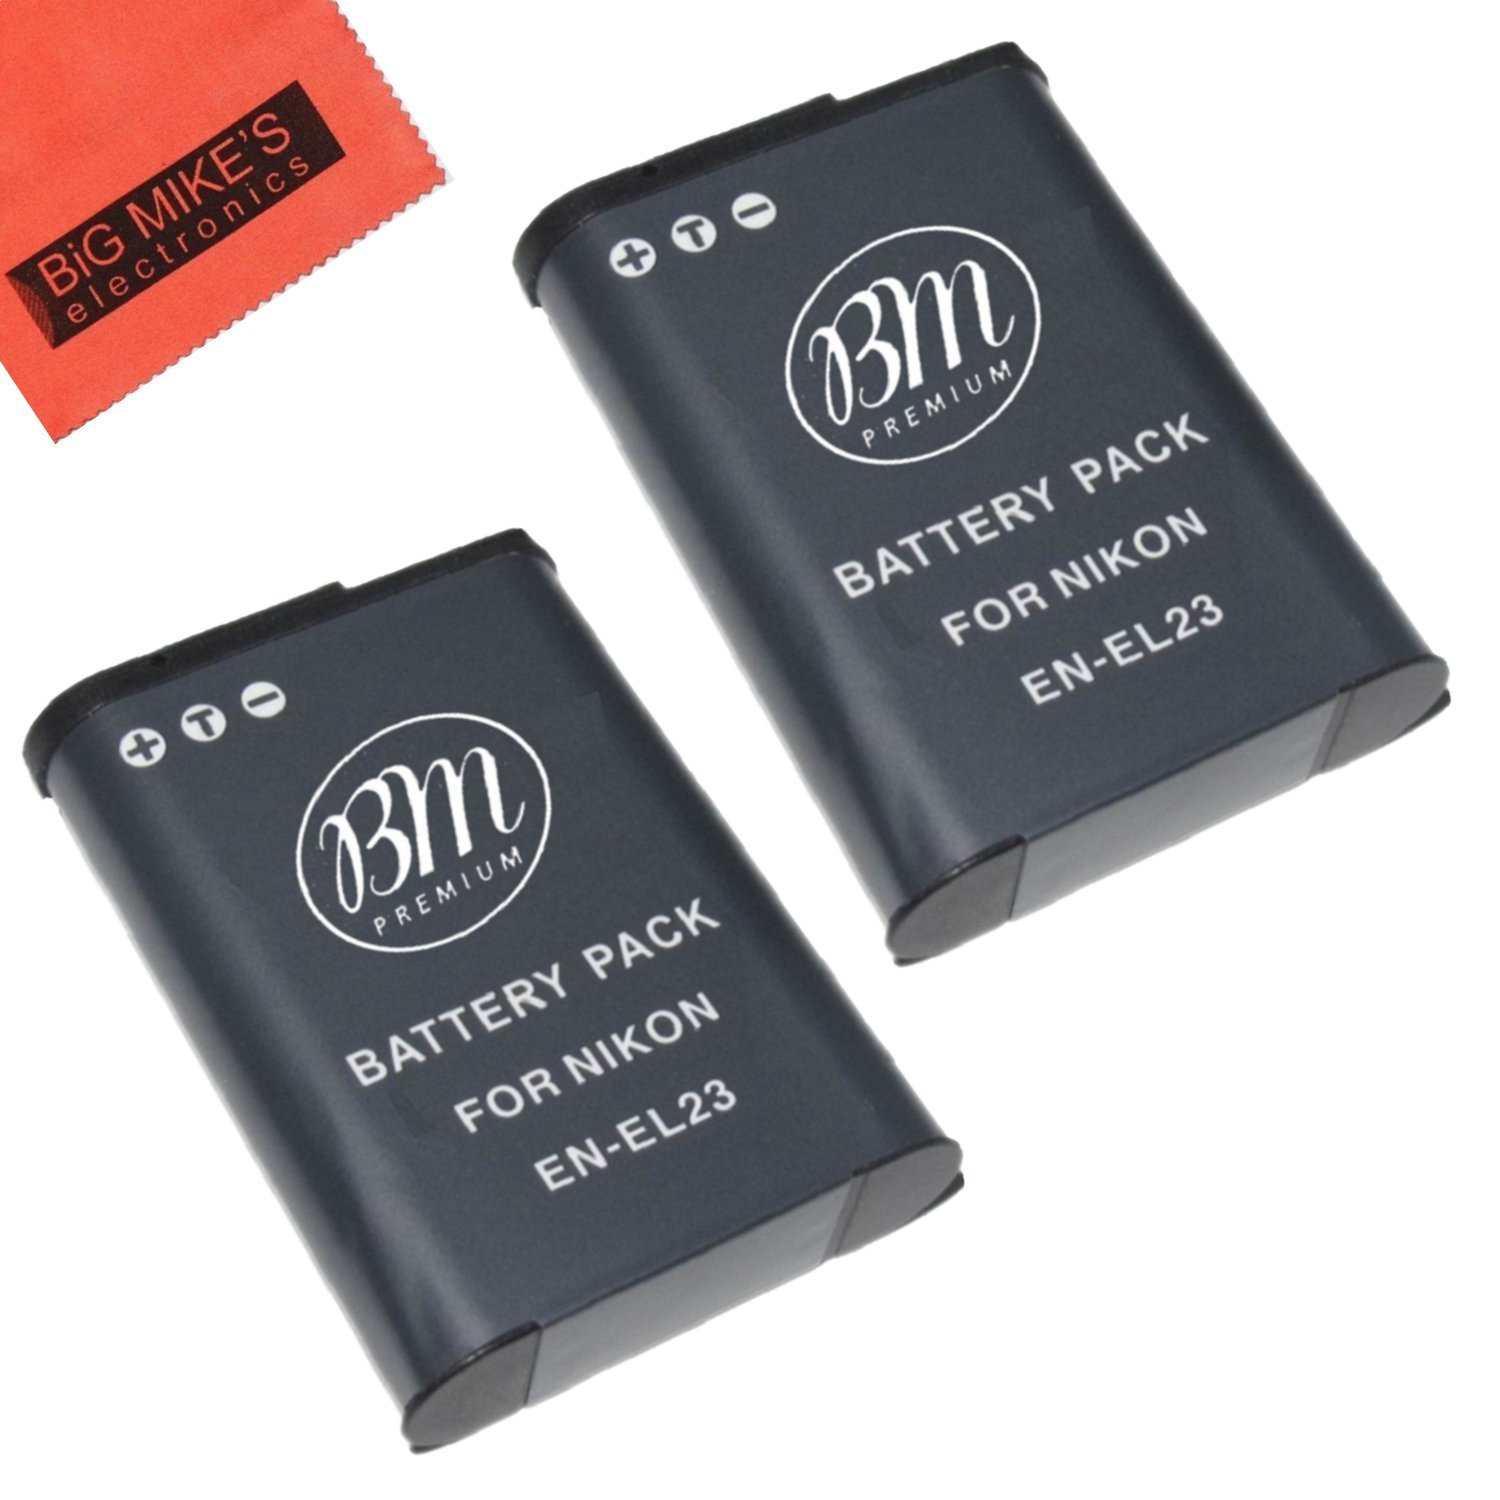 BM Premium 2-Pack EN-EL23 Batteries for Nikon Coolpix B700, P600, P610, P900, S810c Digital Camera